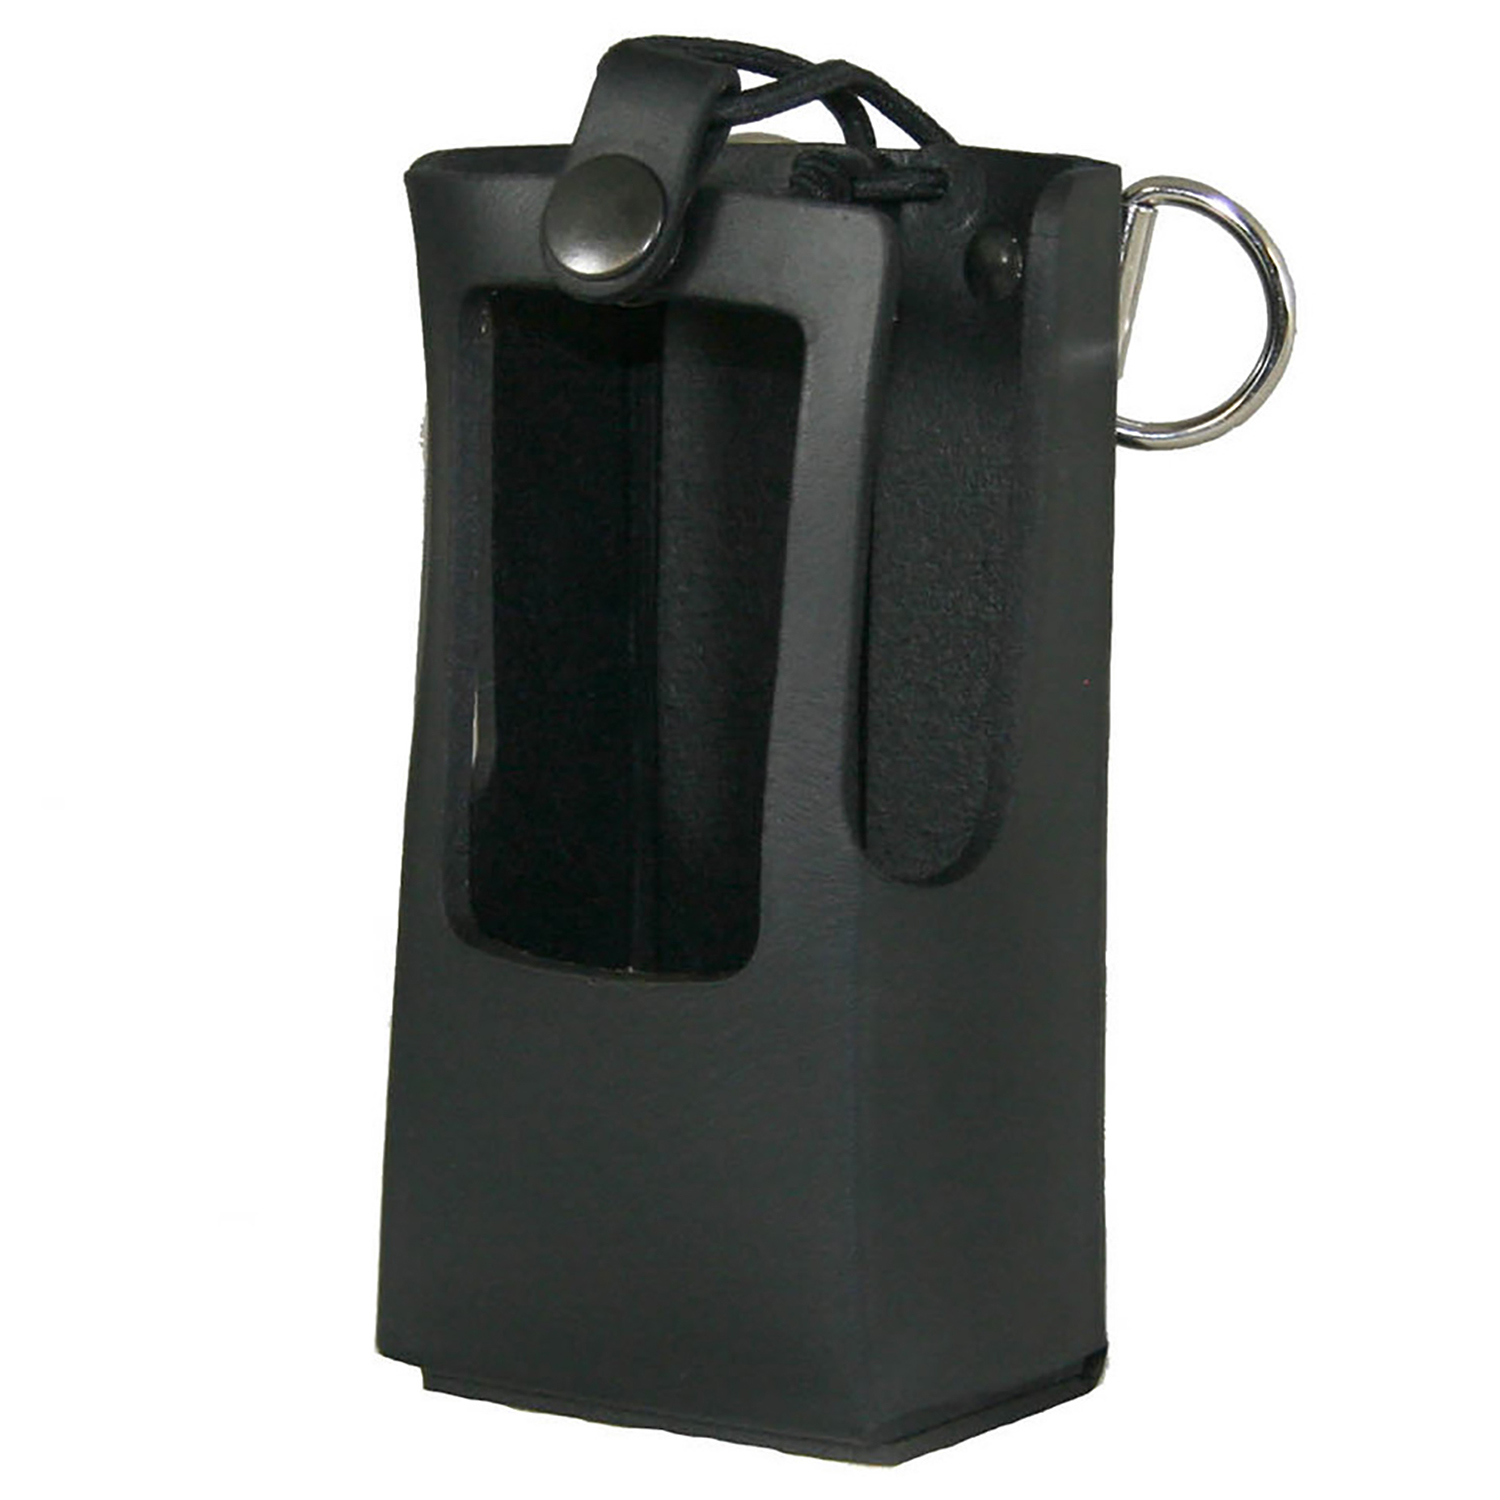 Boston Leather Firefighter Radio Holder